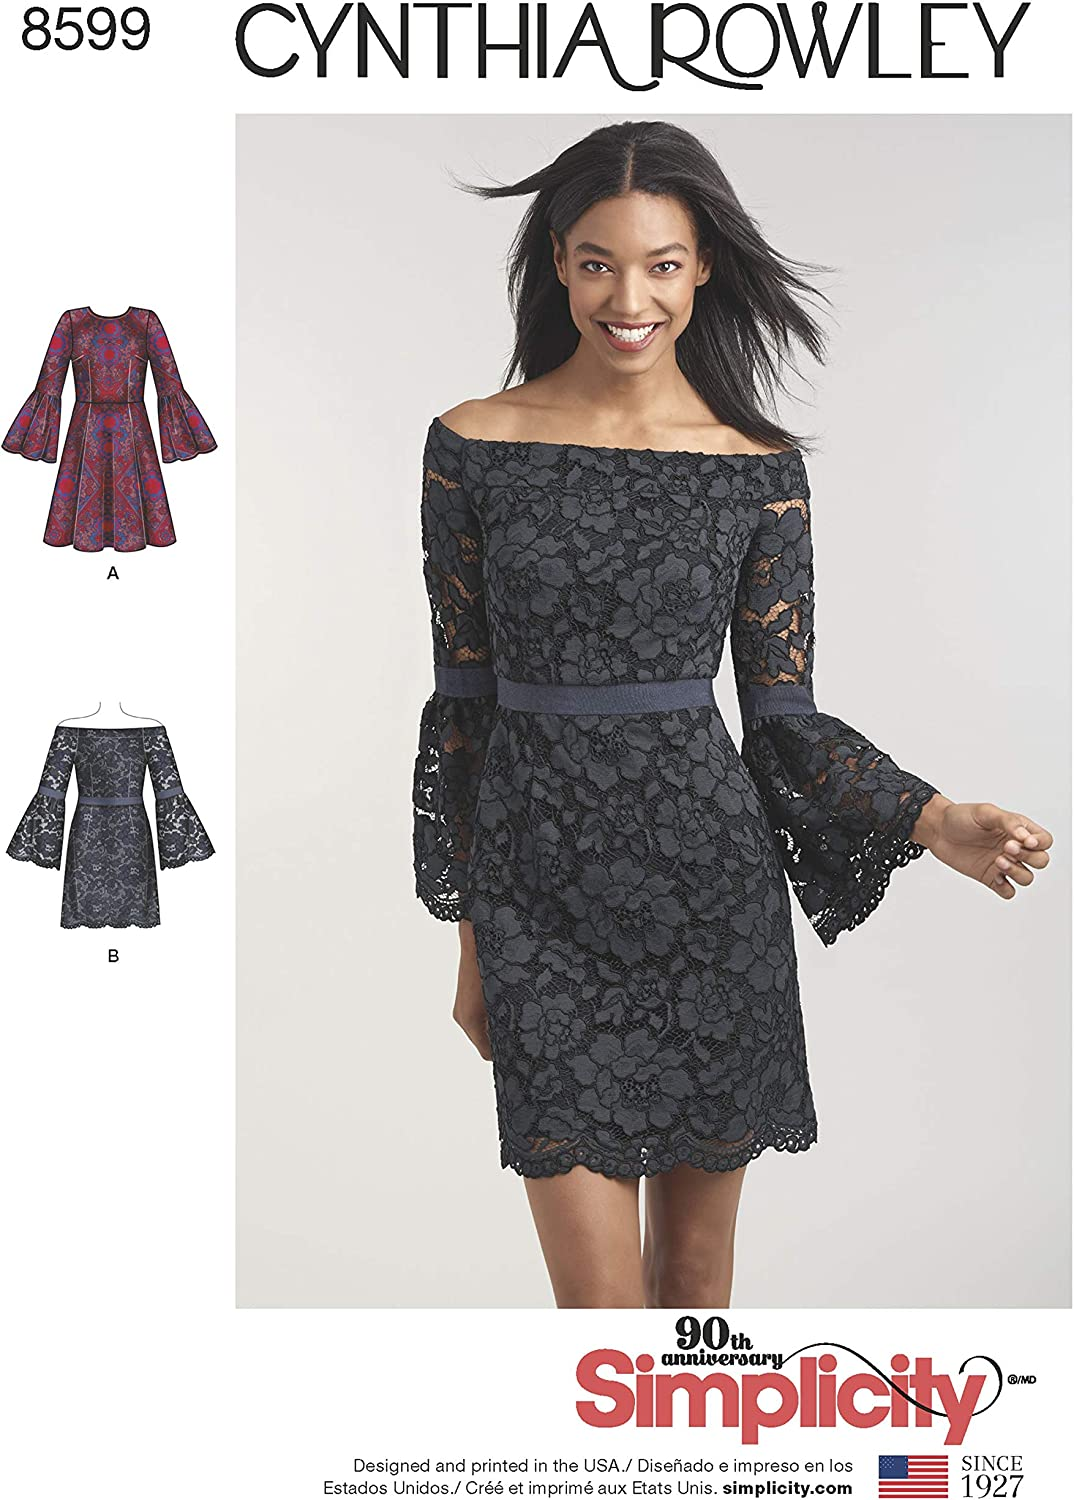 Simplicity Sewing Pattern D0888 / 8599 - Misses' and Petites' Cynthia Rowley Dresses, H5 (6-8-10-12-14)